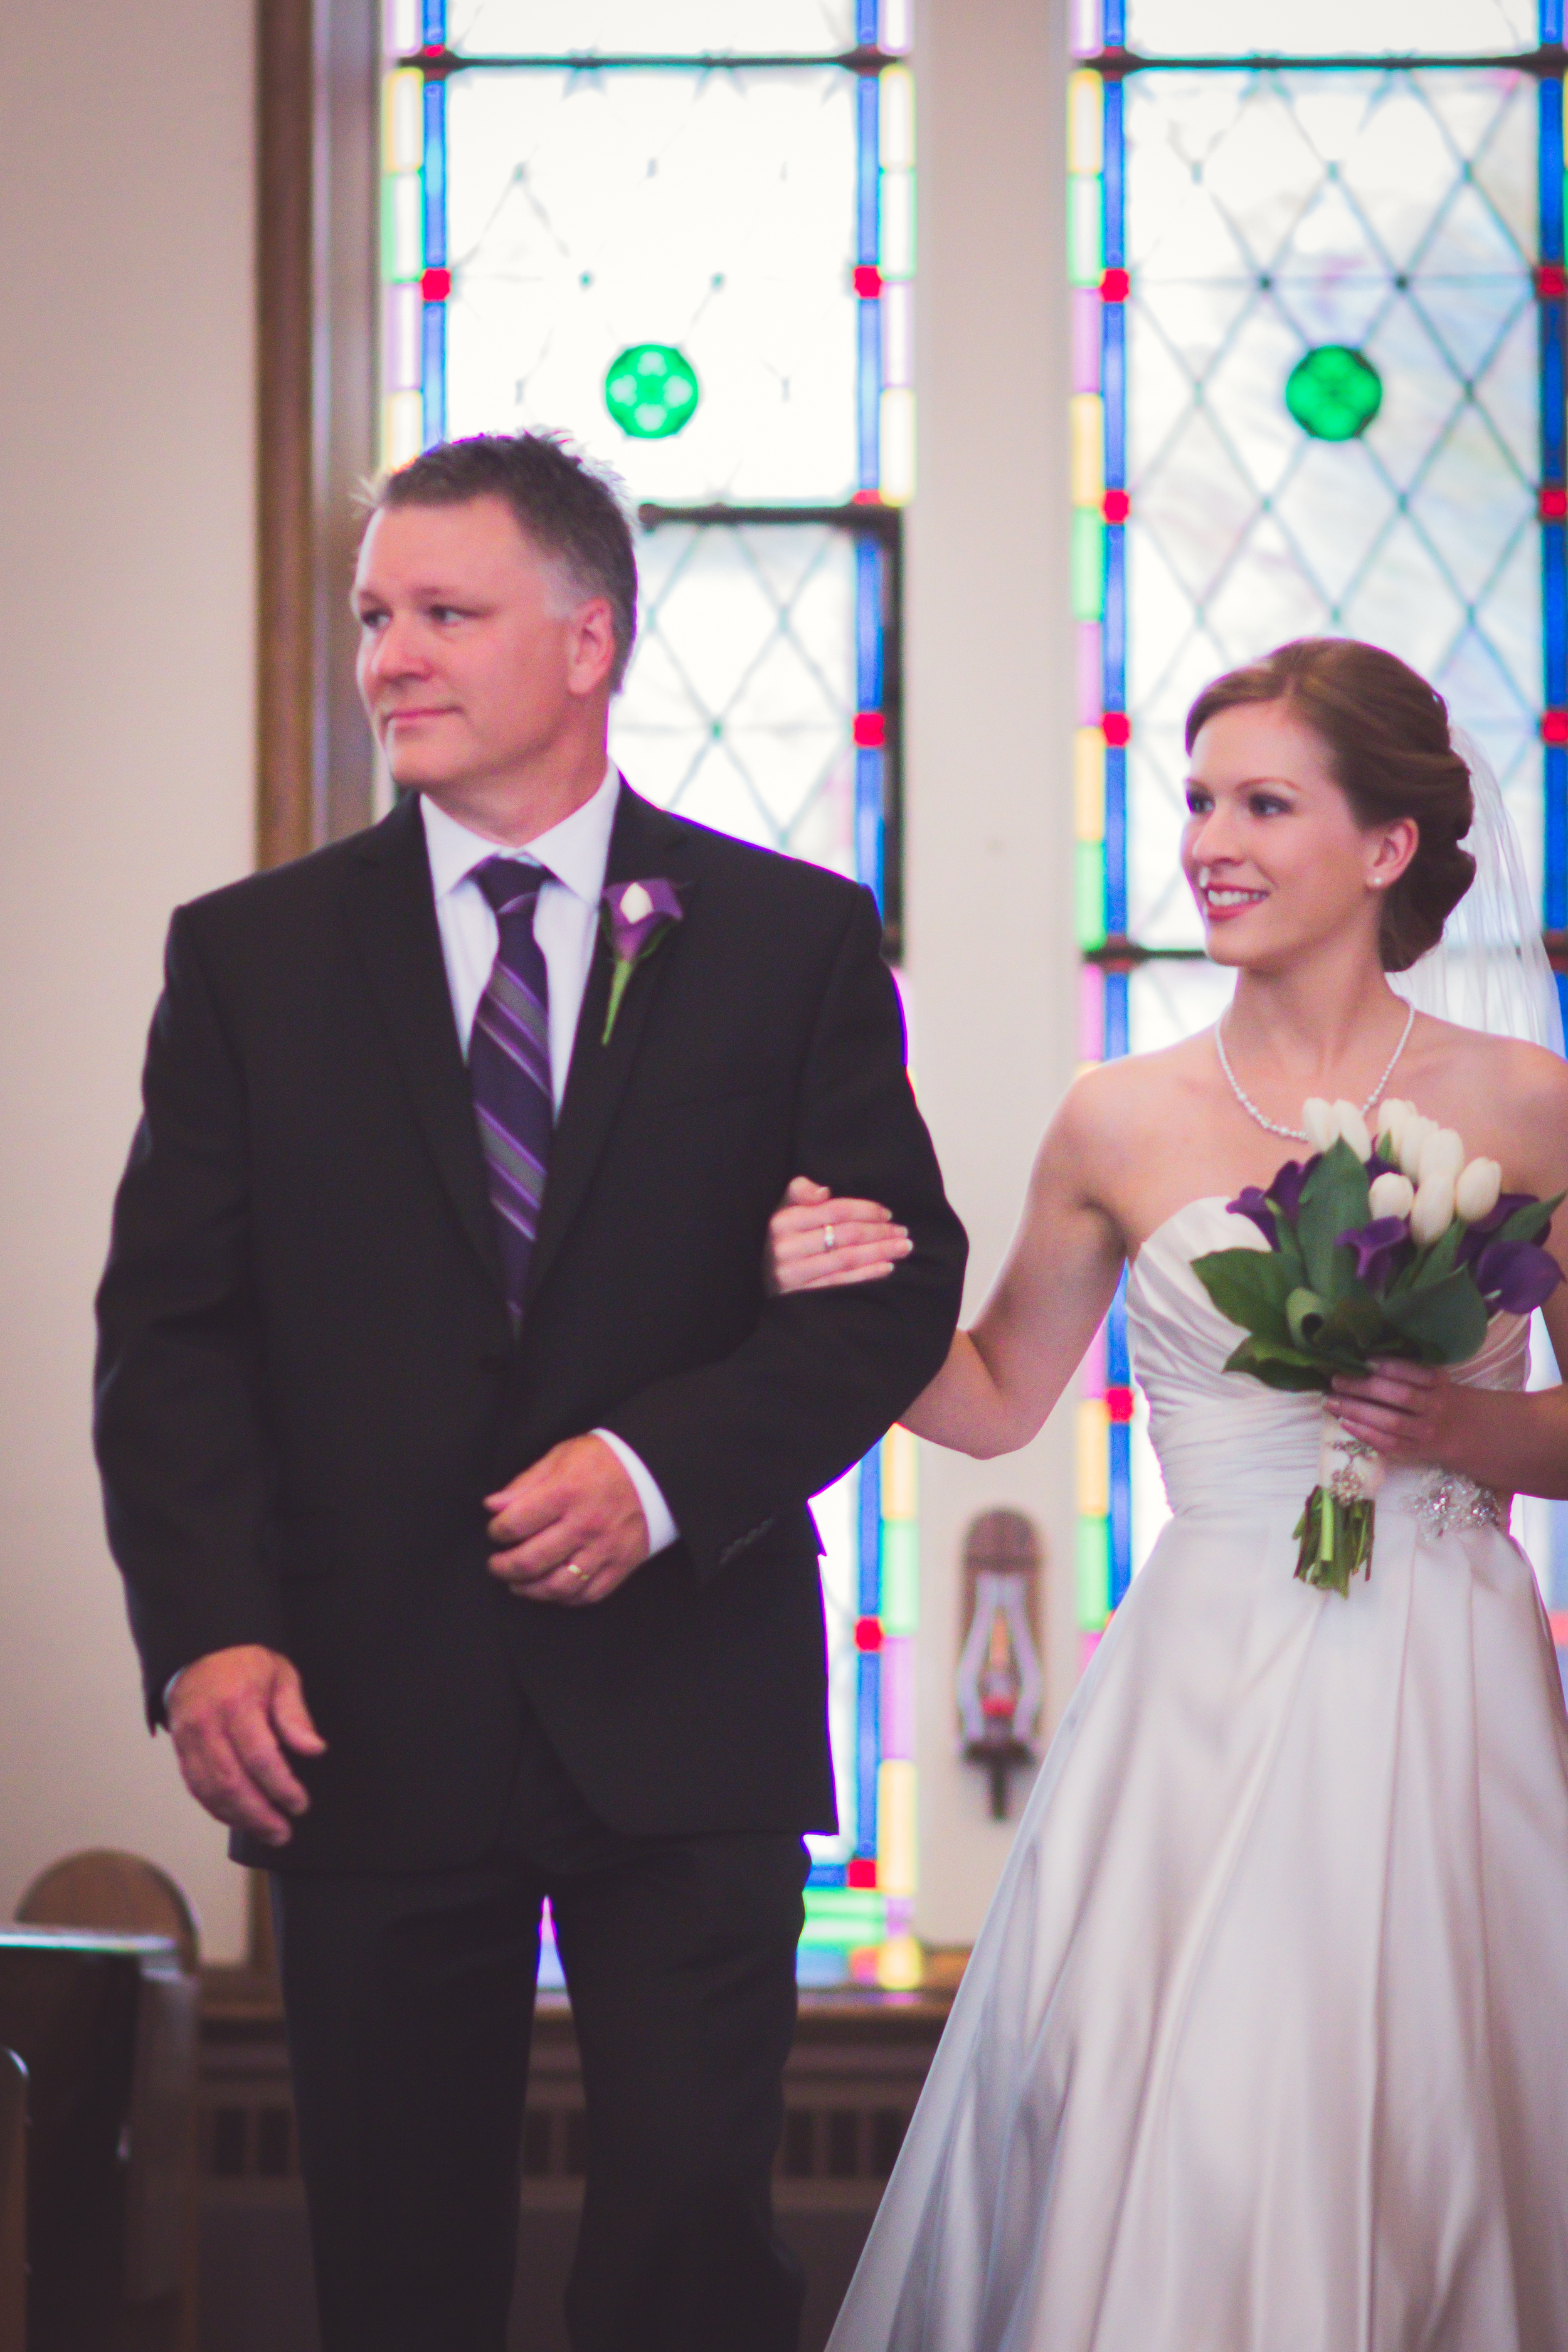 Margaret + Kevin - 6.28.14 - Shadow|Shine Pictures